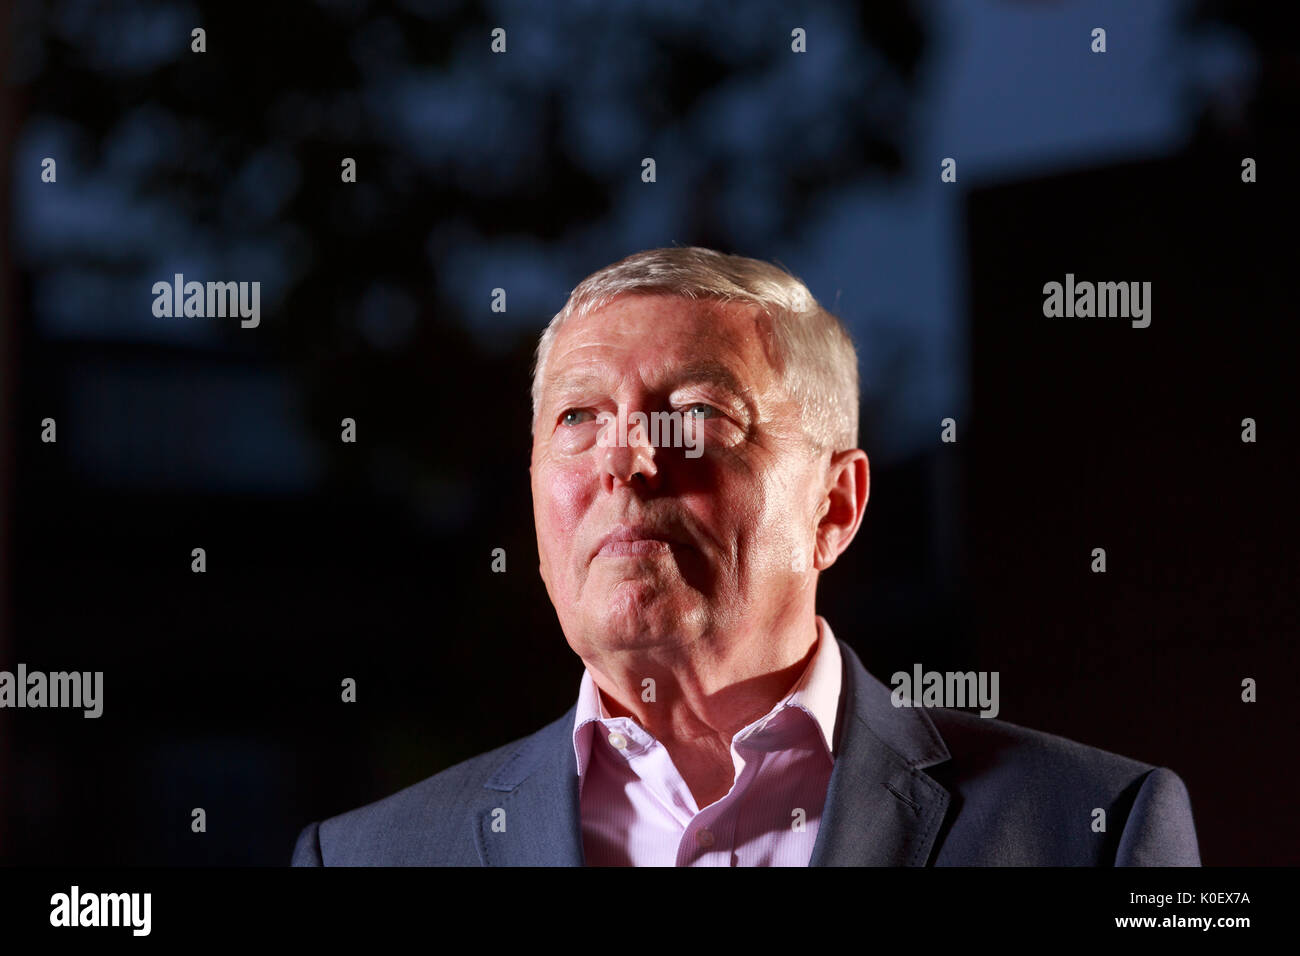 Edinburgh, Scotland 22nd August. Day 11 Edinburgh International Book Festival. Pictured: Alan Johnson, British Labour Party politician who served as Home Secretary from June 2009 to May 2010. Pako Mera/Alamy Live News. - Stock Image